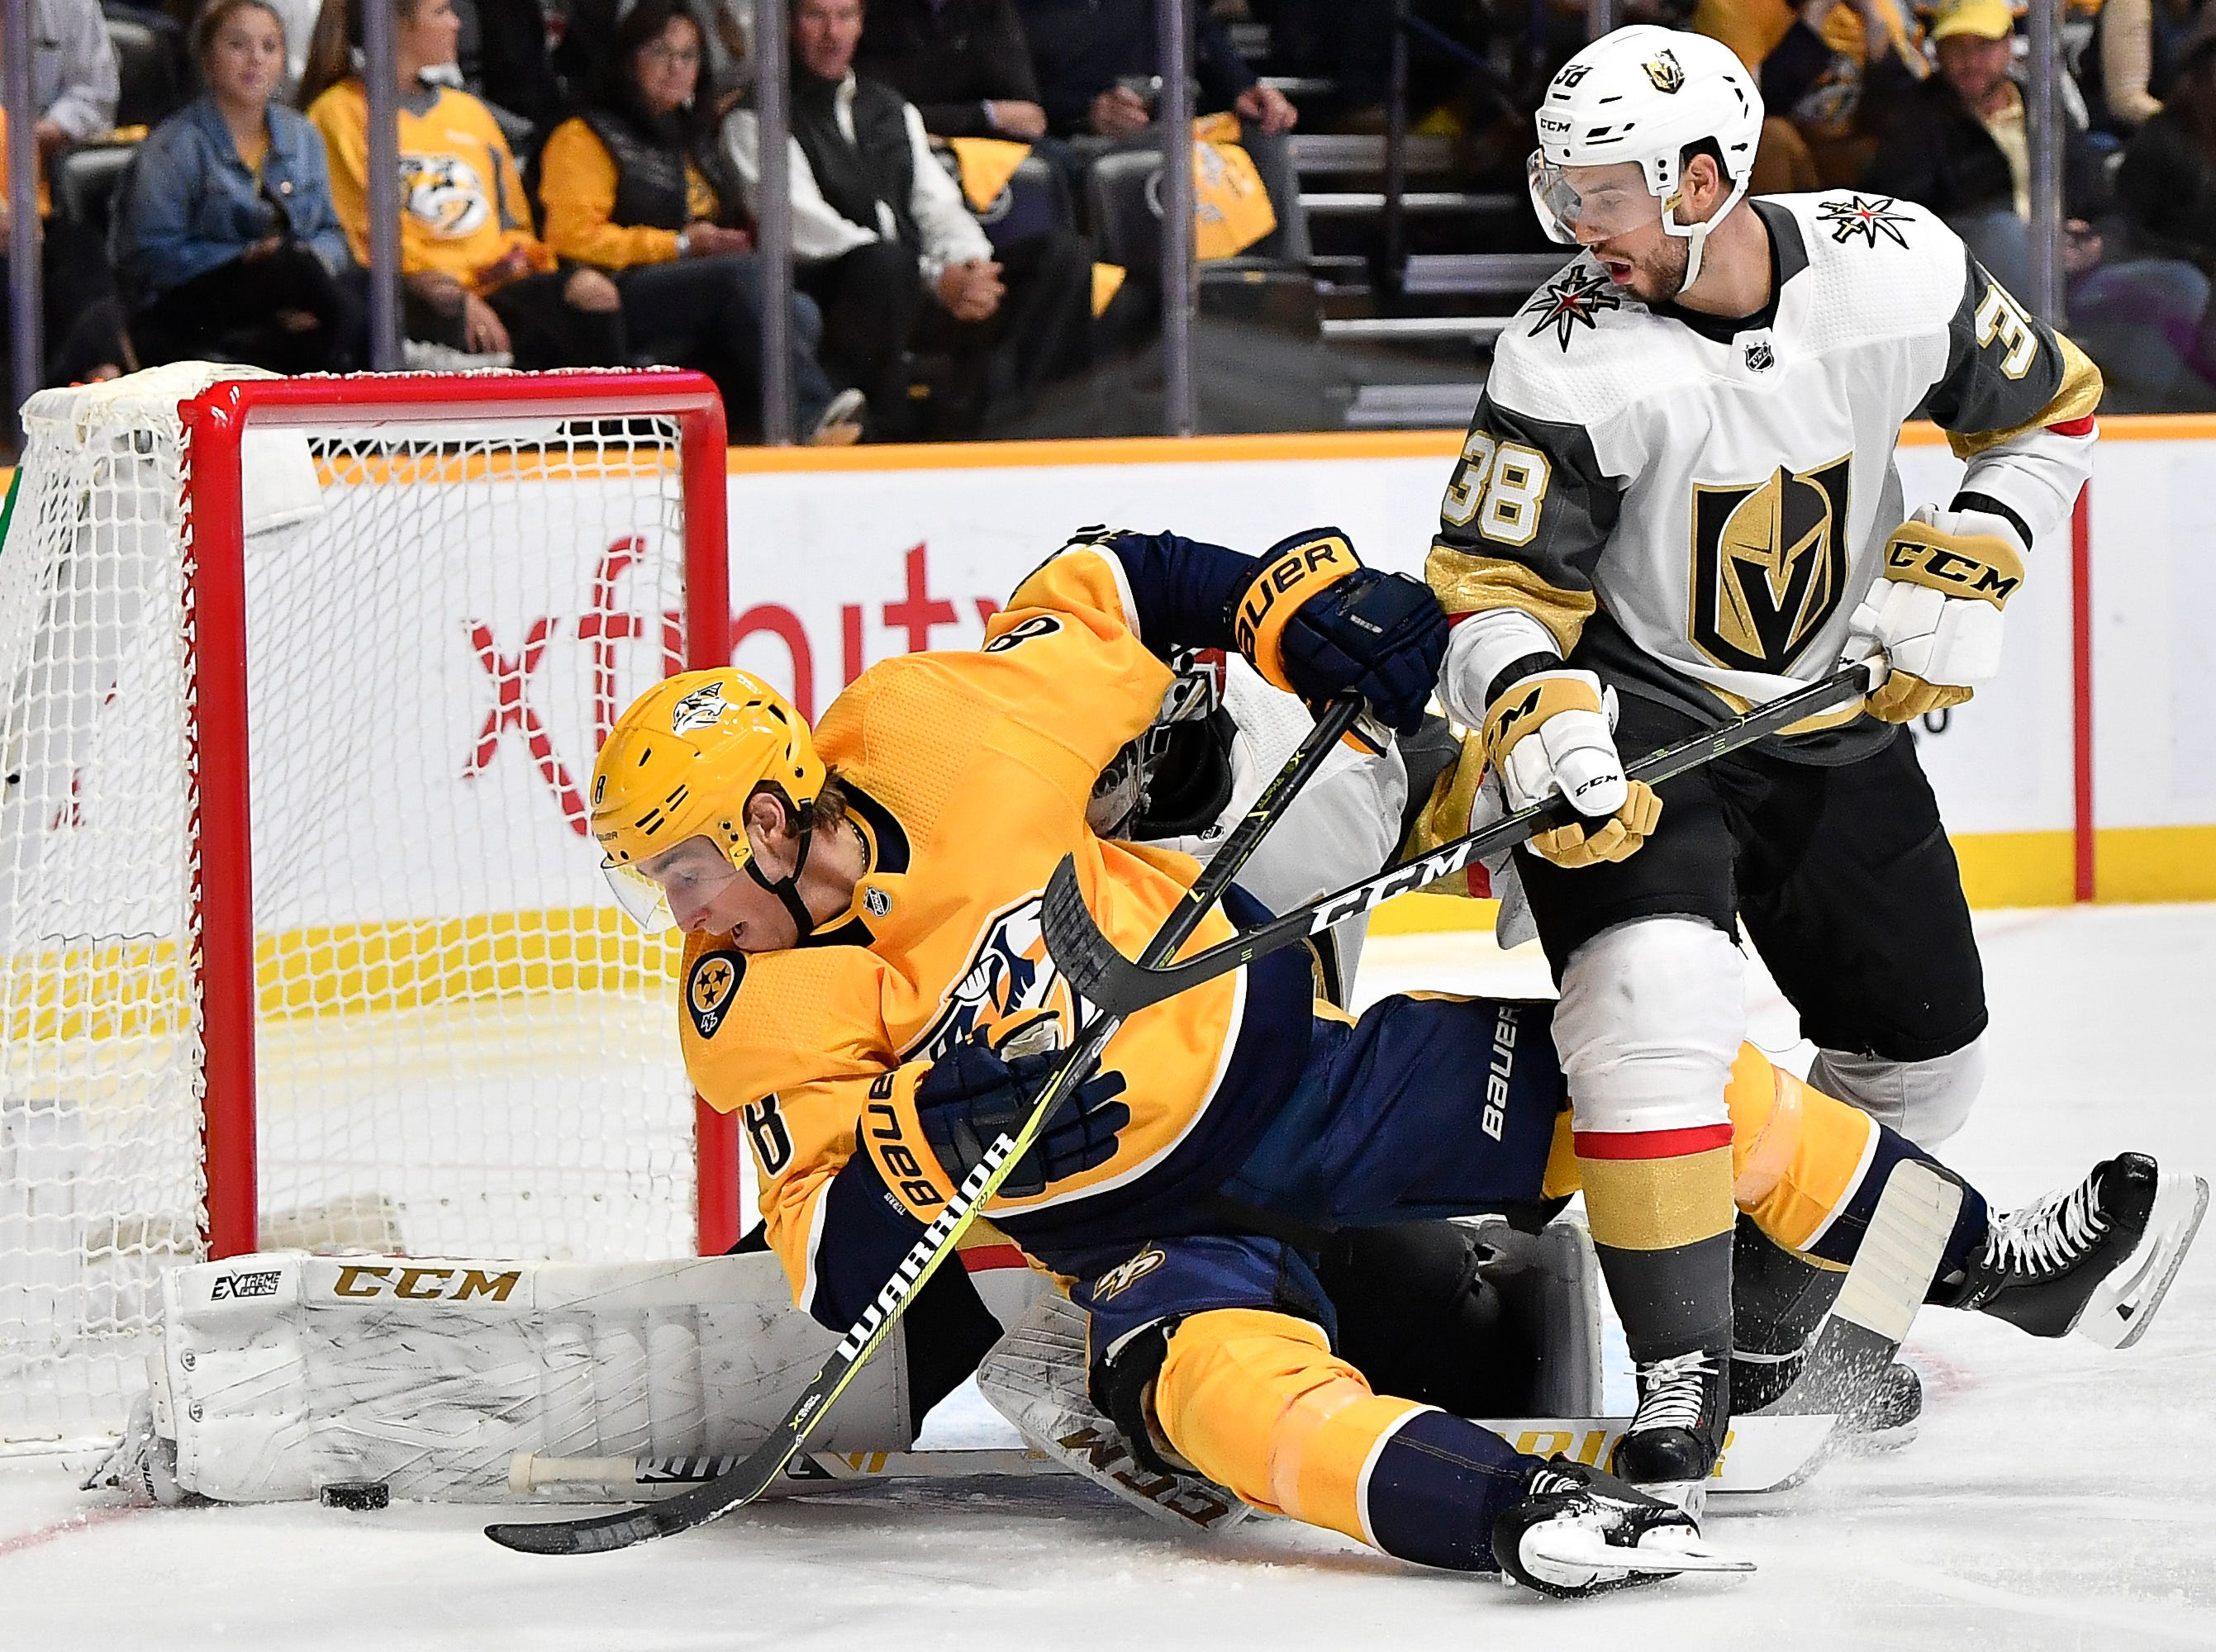 Predators center Kyle Turris (8) tries to shoot the puck past Golden Knights goaltender Malcolm Subban (30) and right wing Tomas Hyka (38) during the first period at Bridgestone Arena Tuesday, Oct. 30, 2018, in Nashville, Tenn.